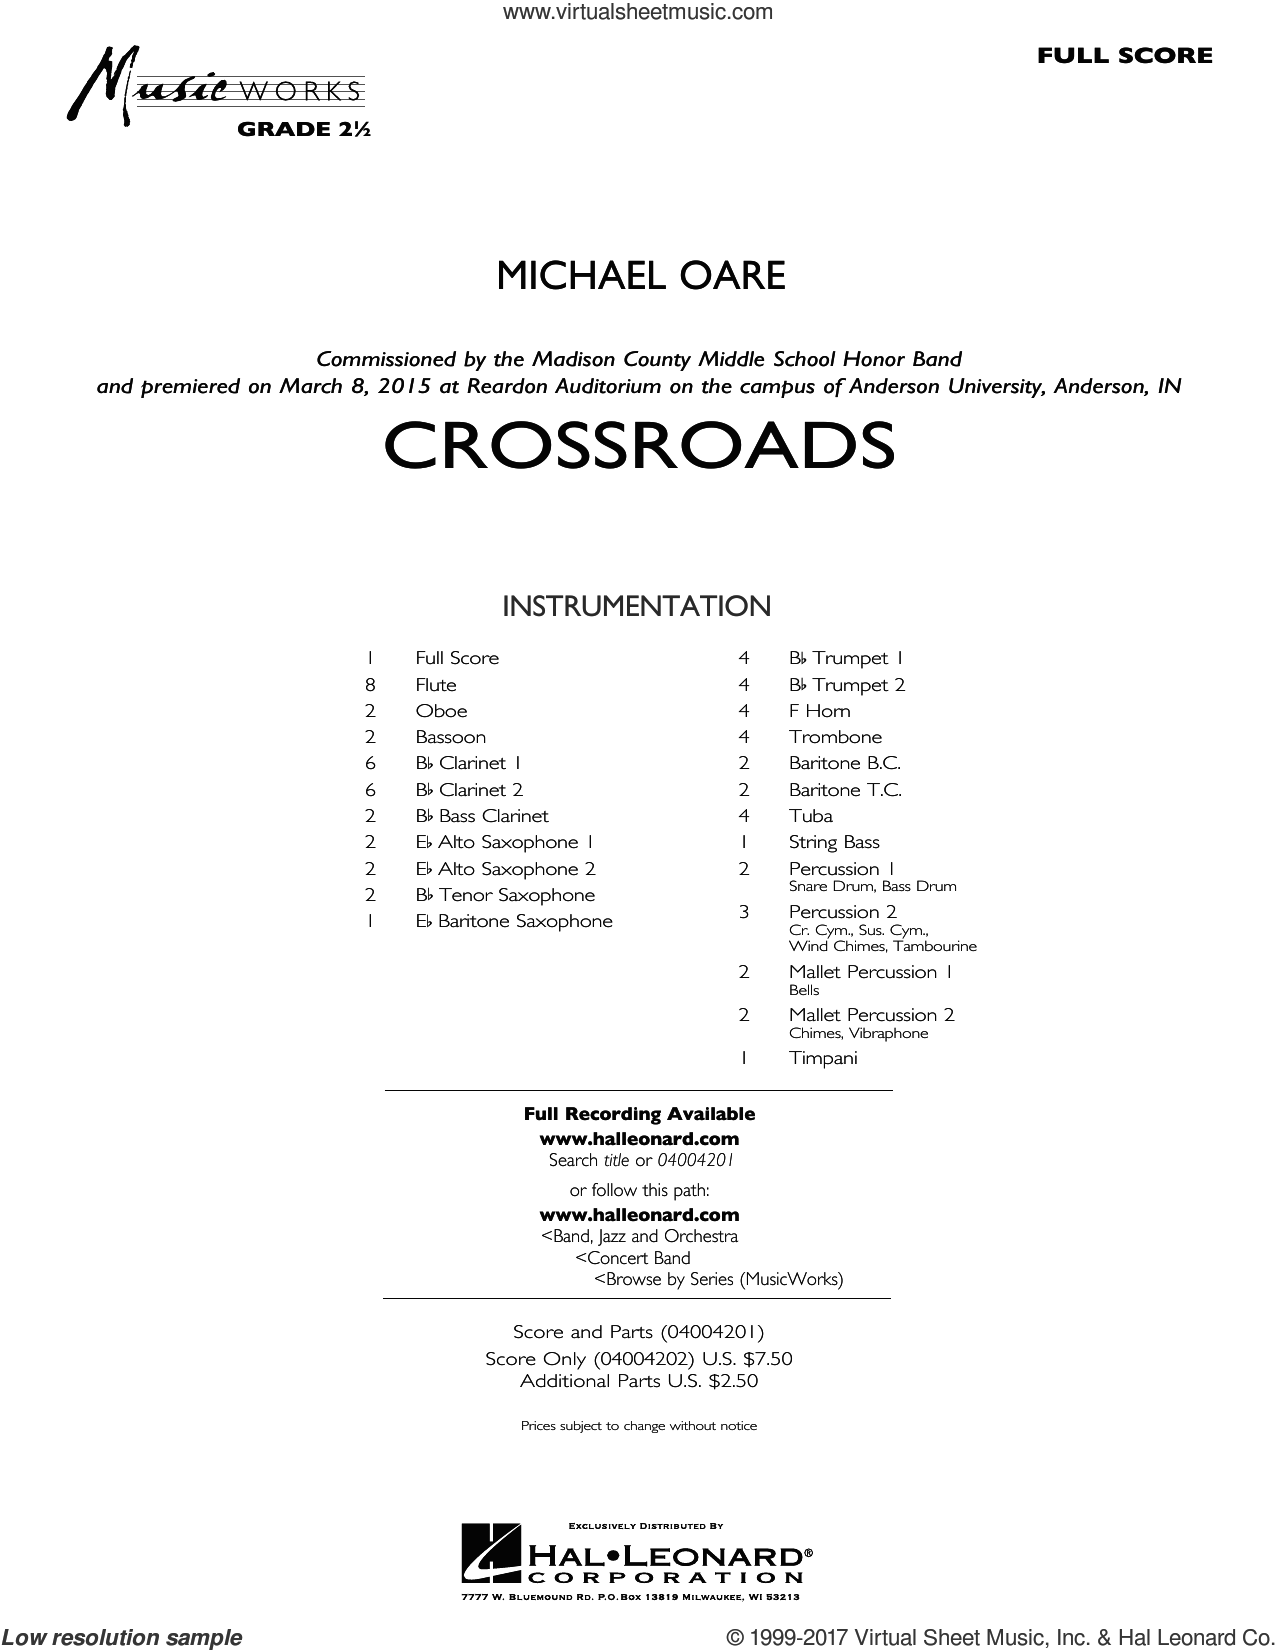 Crossroads (COMPLETE) sheet music for concert band by Michael Oare, intermediate skill level